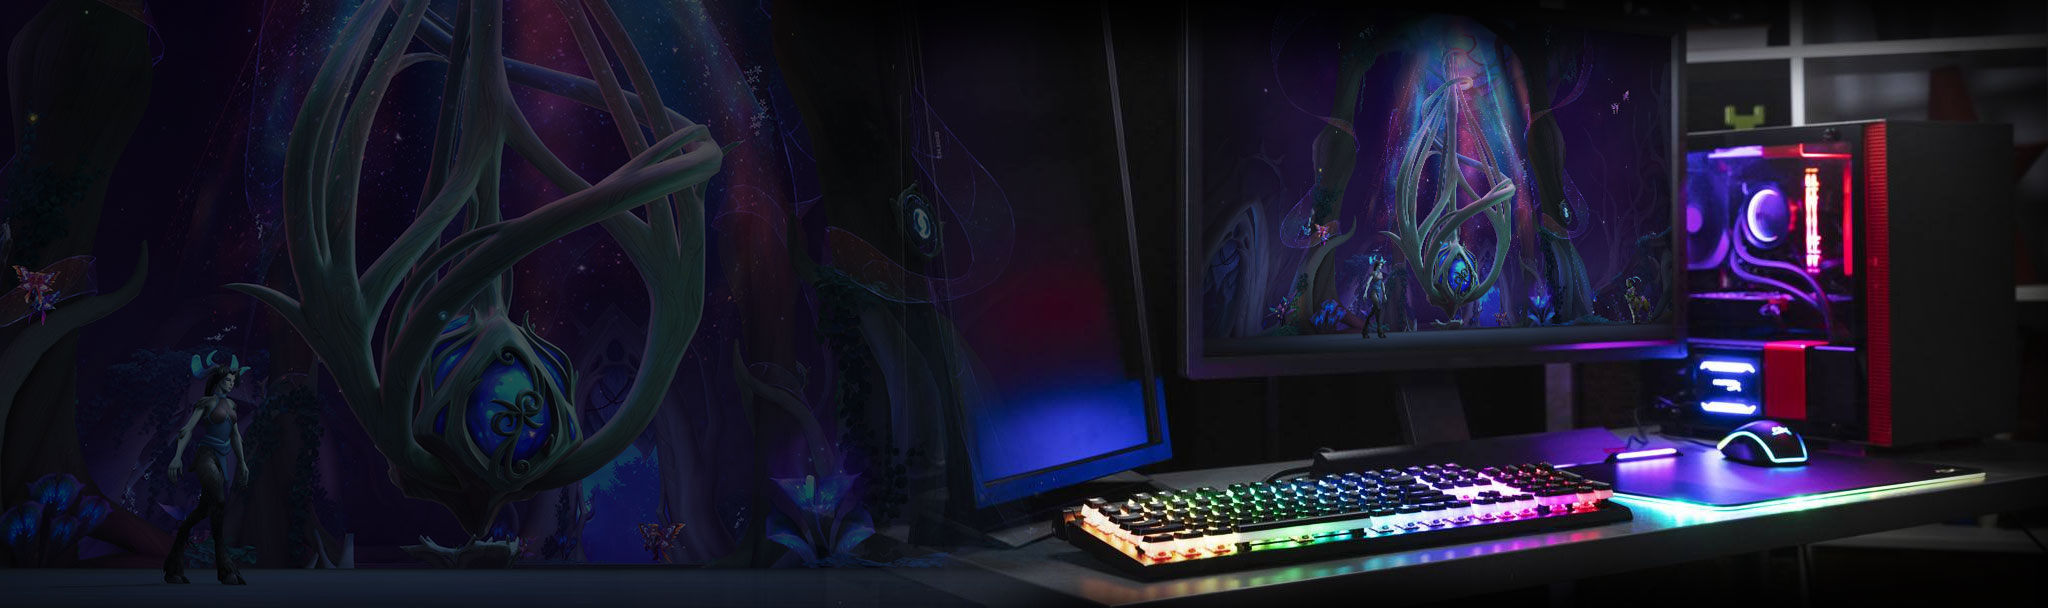 Gaming Keyboards, Mice & Memory for World of Warcraft| HyperX